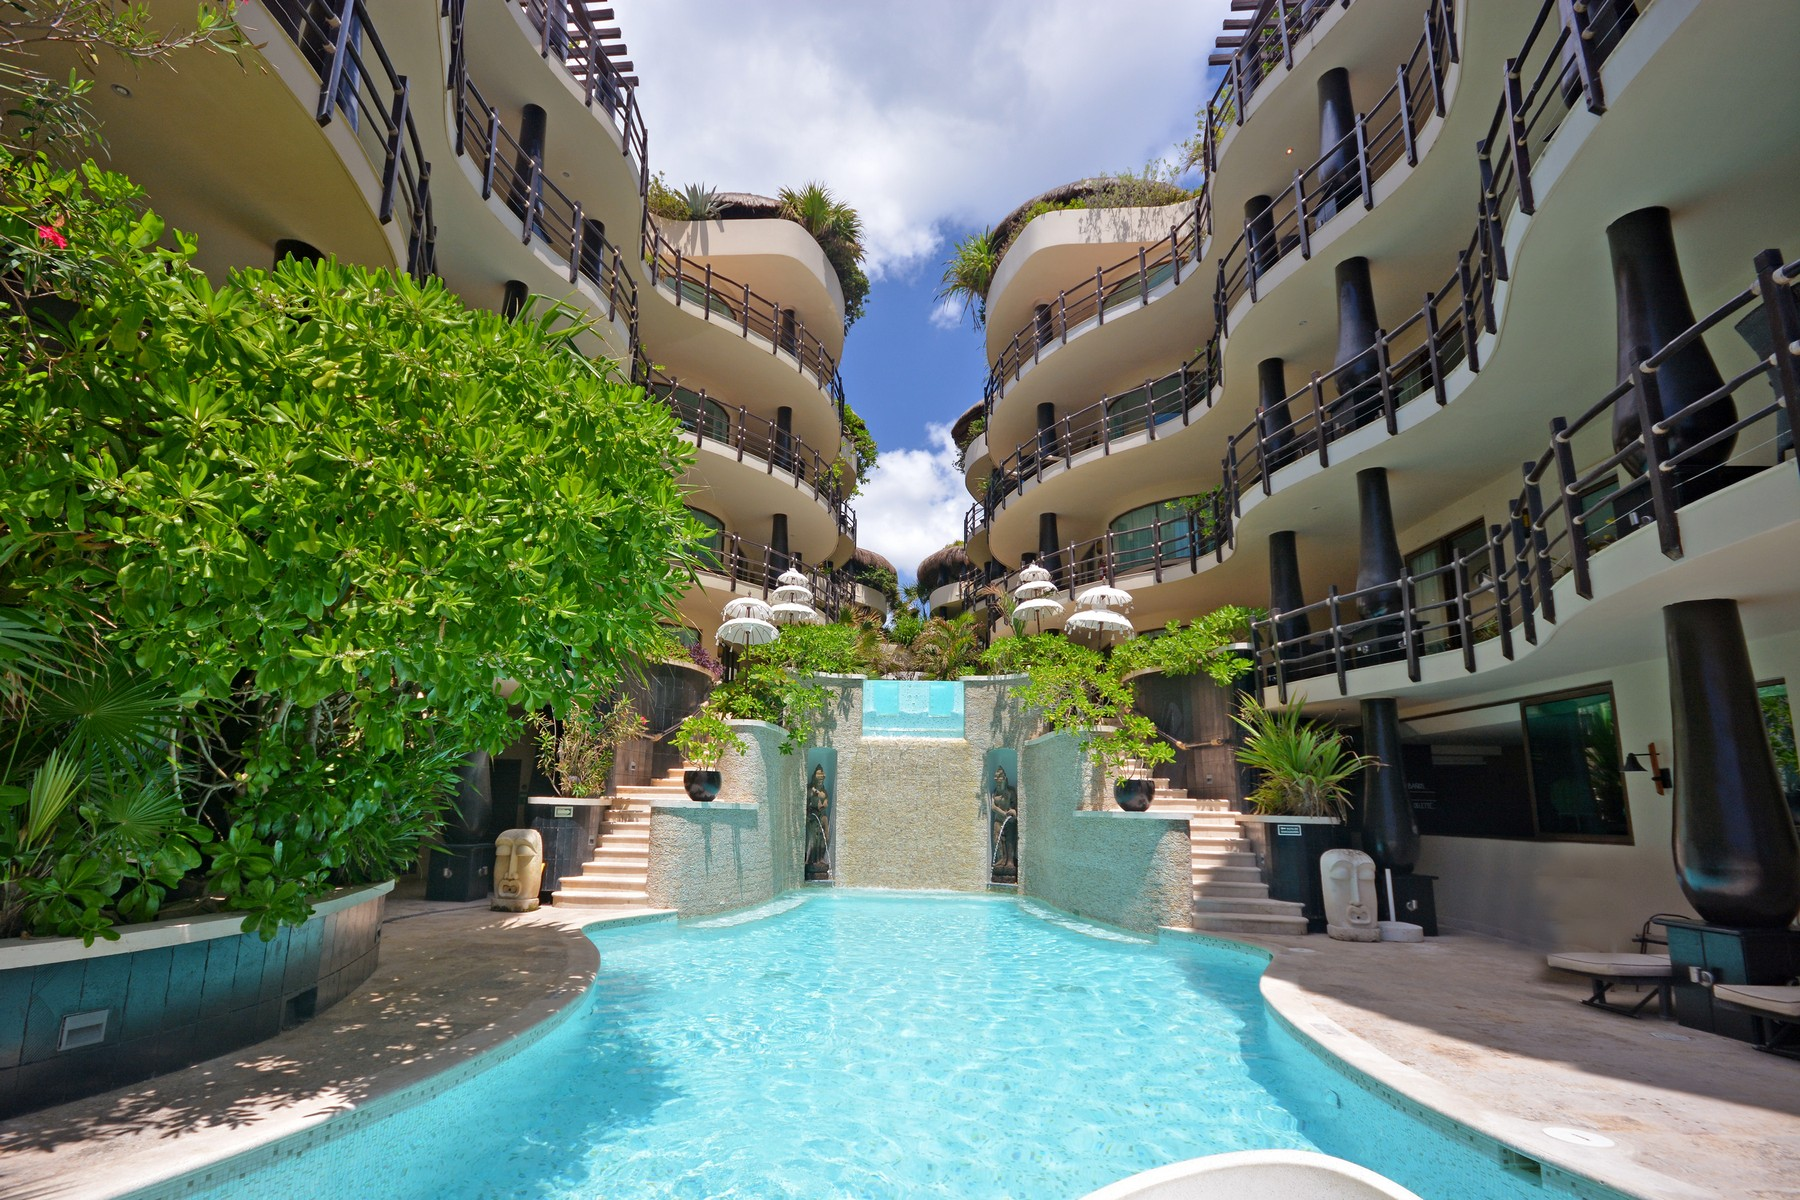 Condominium for Sale at SANCTUARY OF THE SEA Oceanfront, 3rd Level, El Taj Calle 1era Nte, entre 12 y 14 Nte. Playa Del Carmen, 77710 Mexico